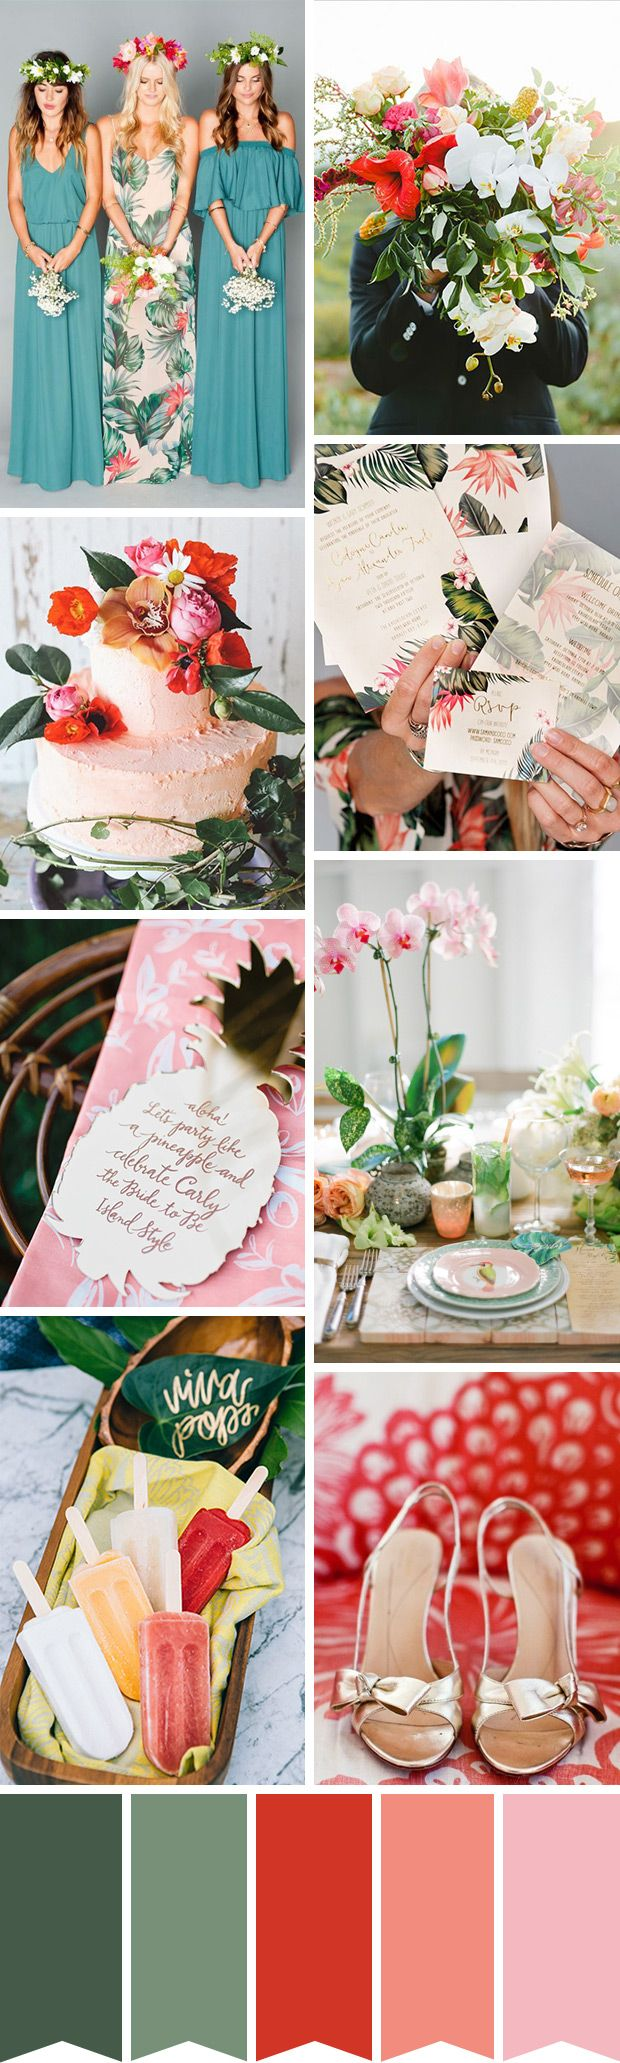 A fun yet chic tropical inspired wedding | www.onefabday.com